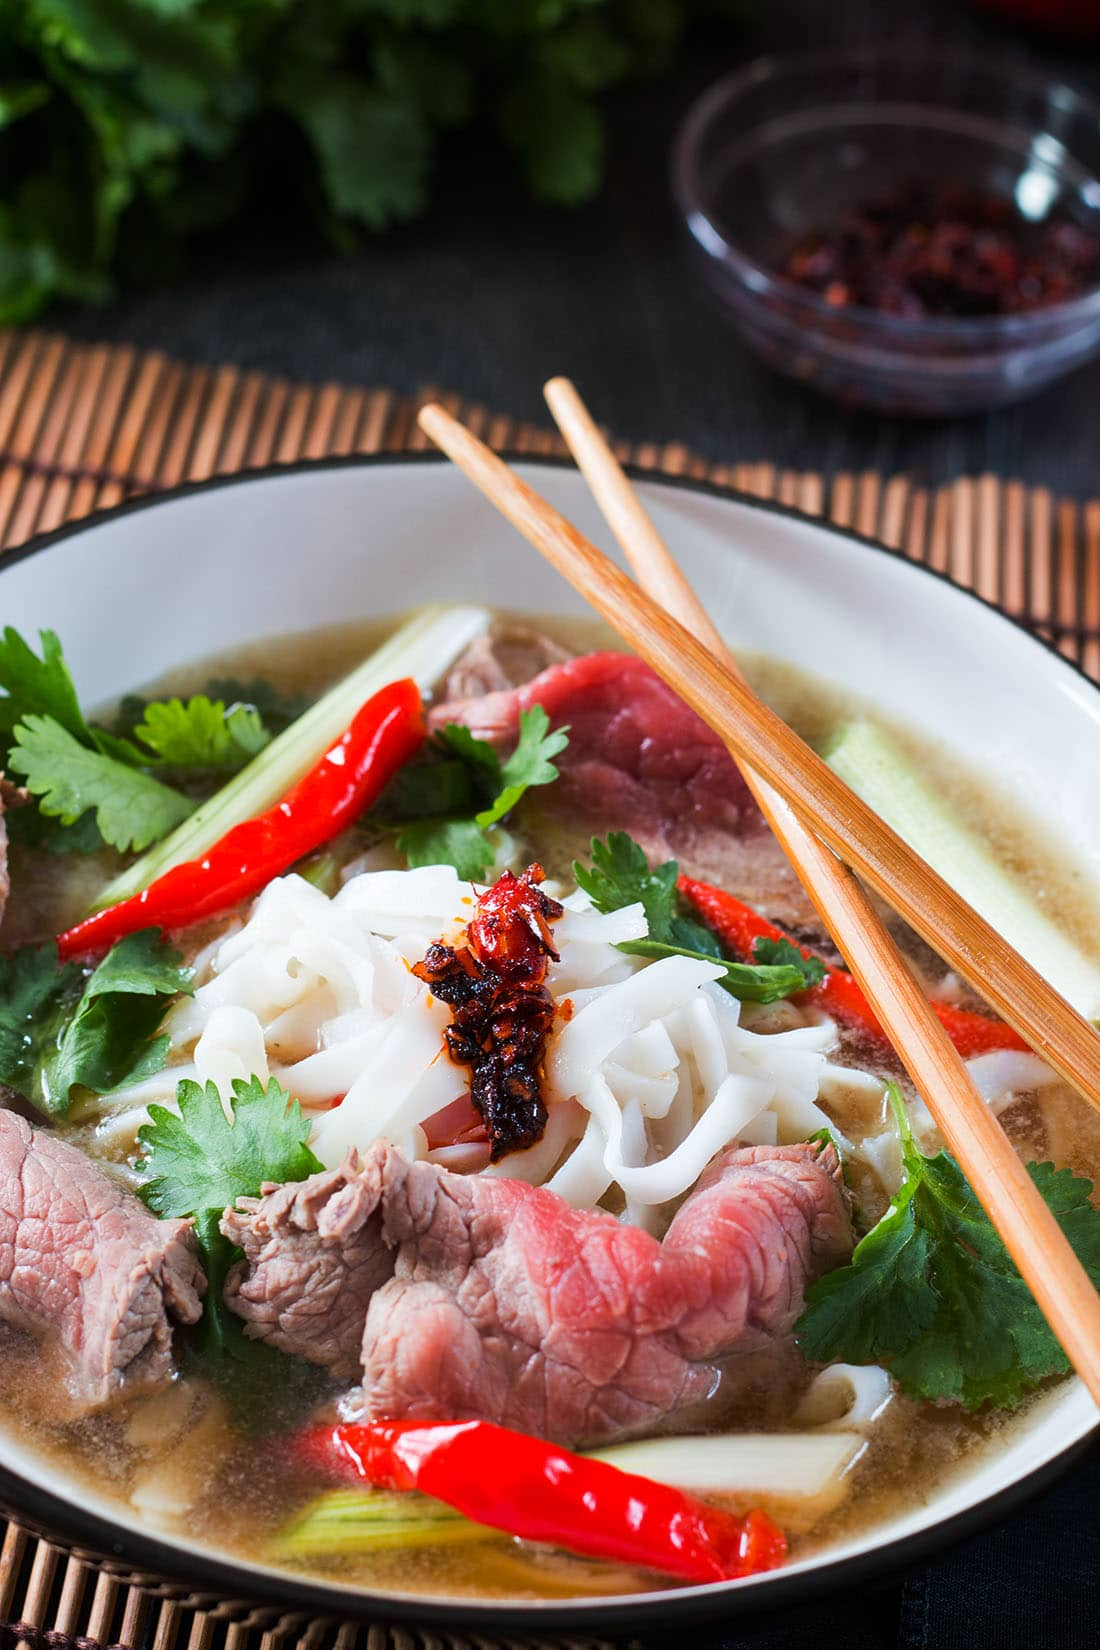 Tuan's Vietnamese Beef Noodle Pho in a bowl with chop sticks and garnish